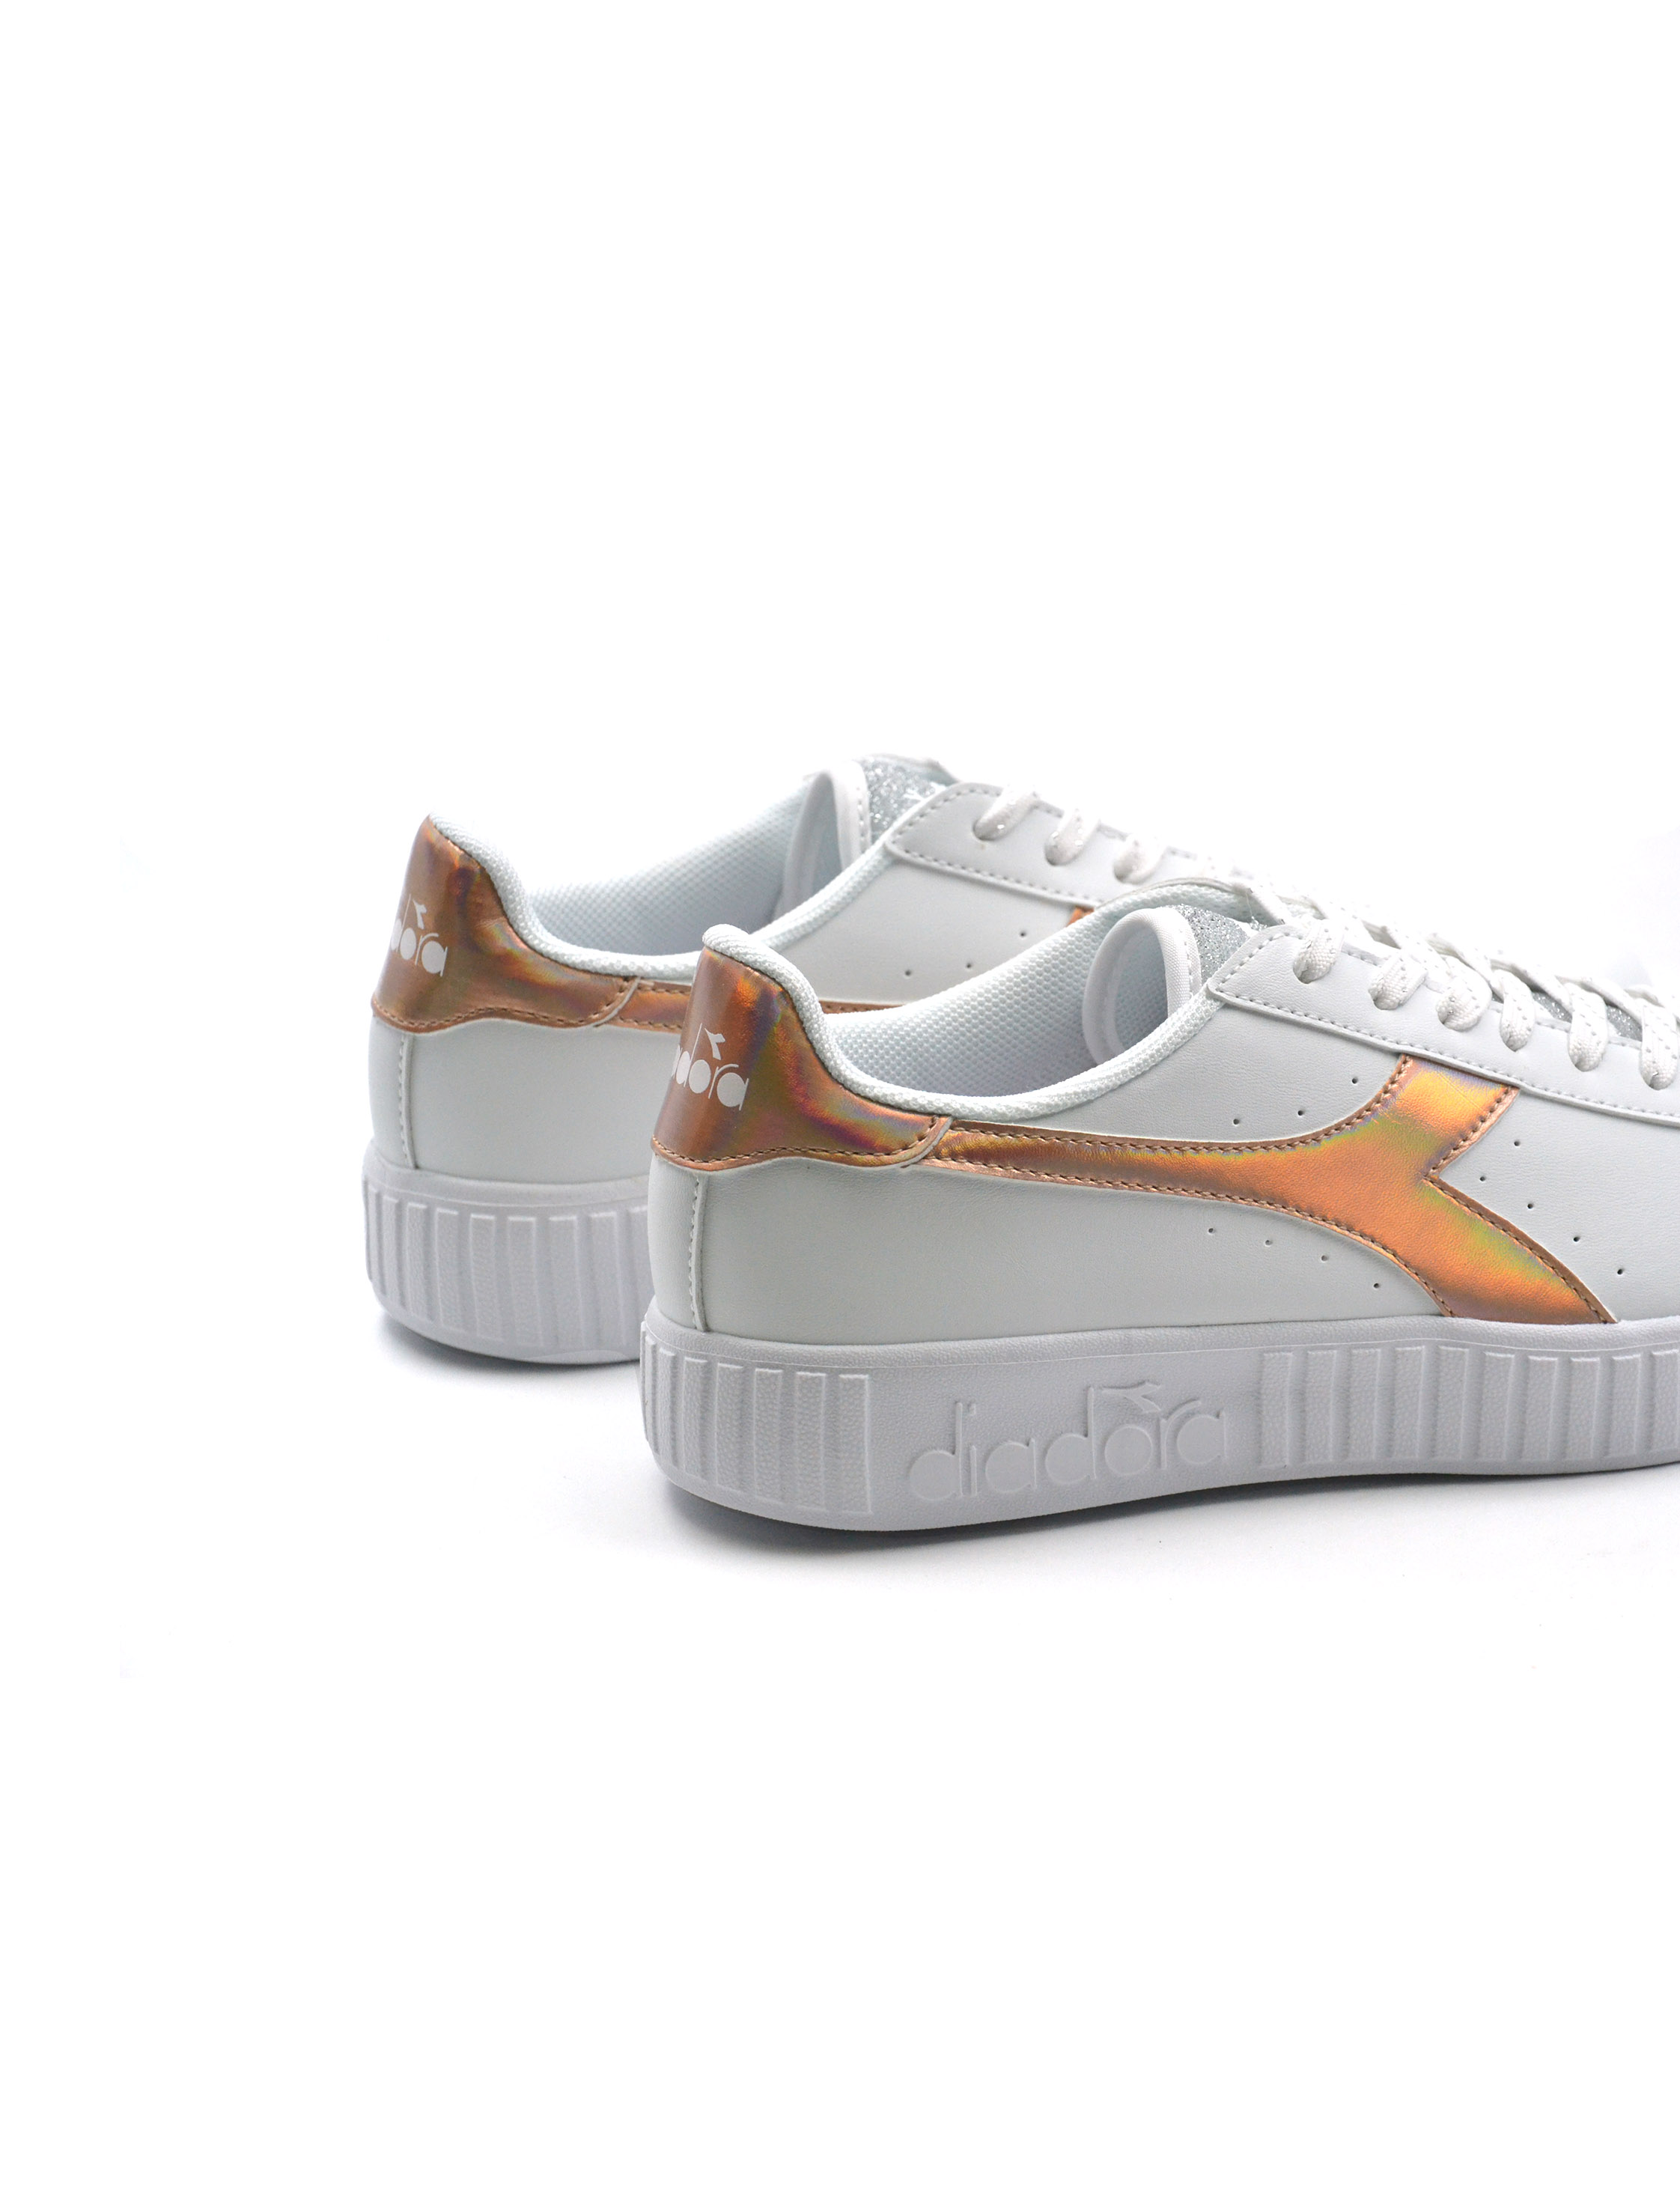 Diadora game step shiny sneaker donna, Sneakers, colore